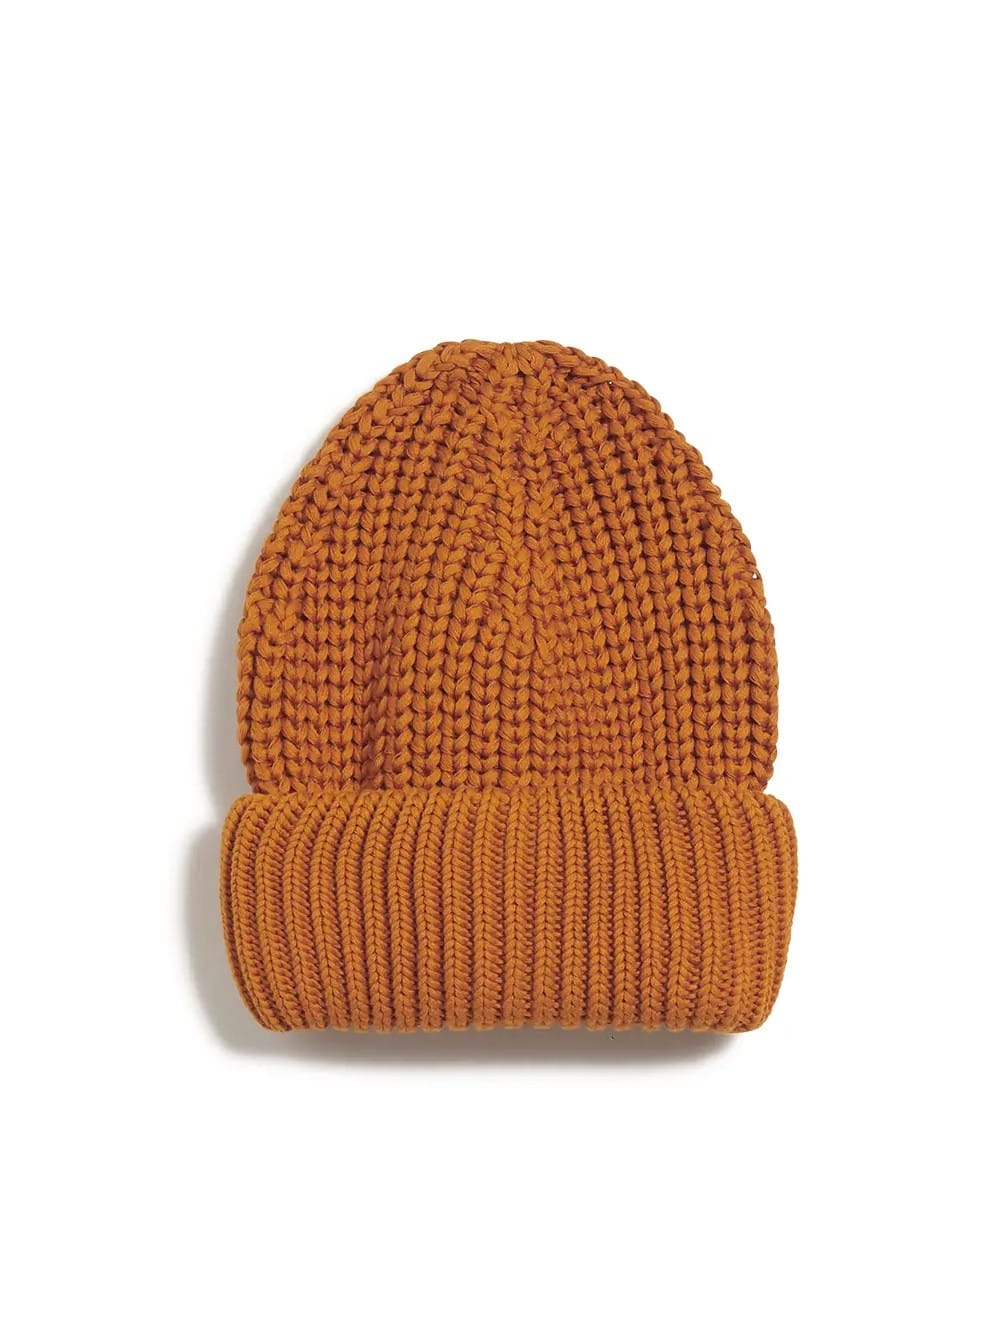 Hat made of organic cotton-Camiraa